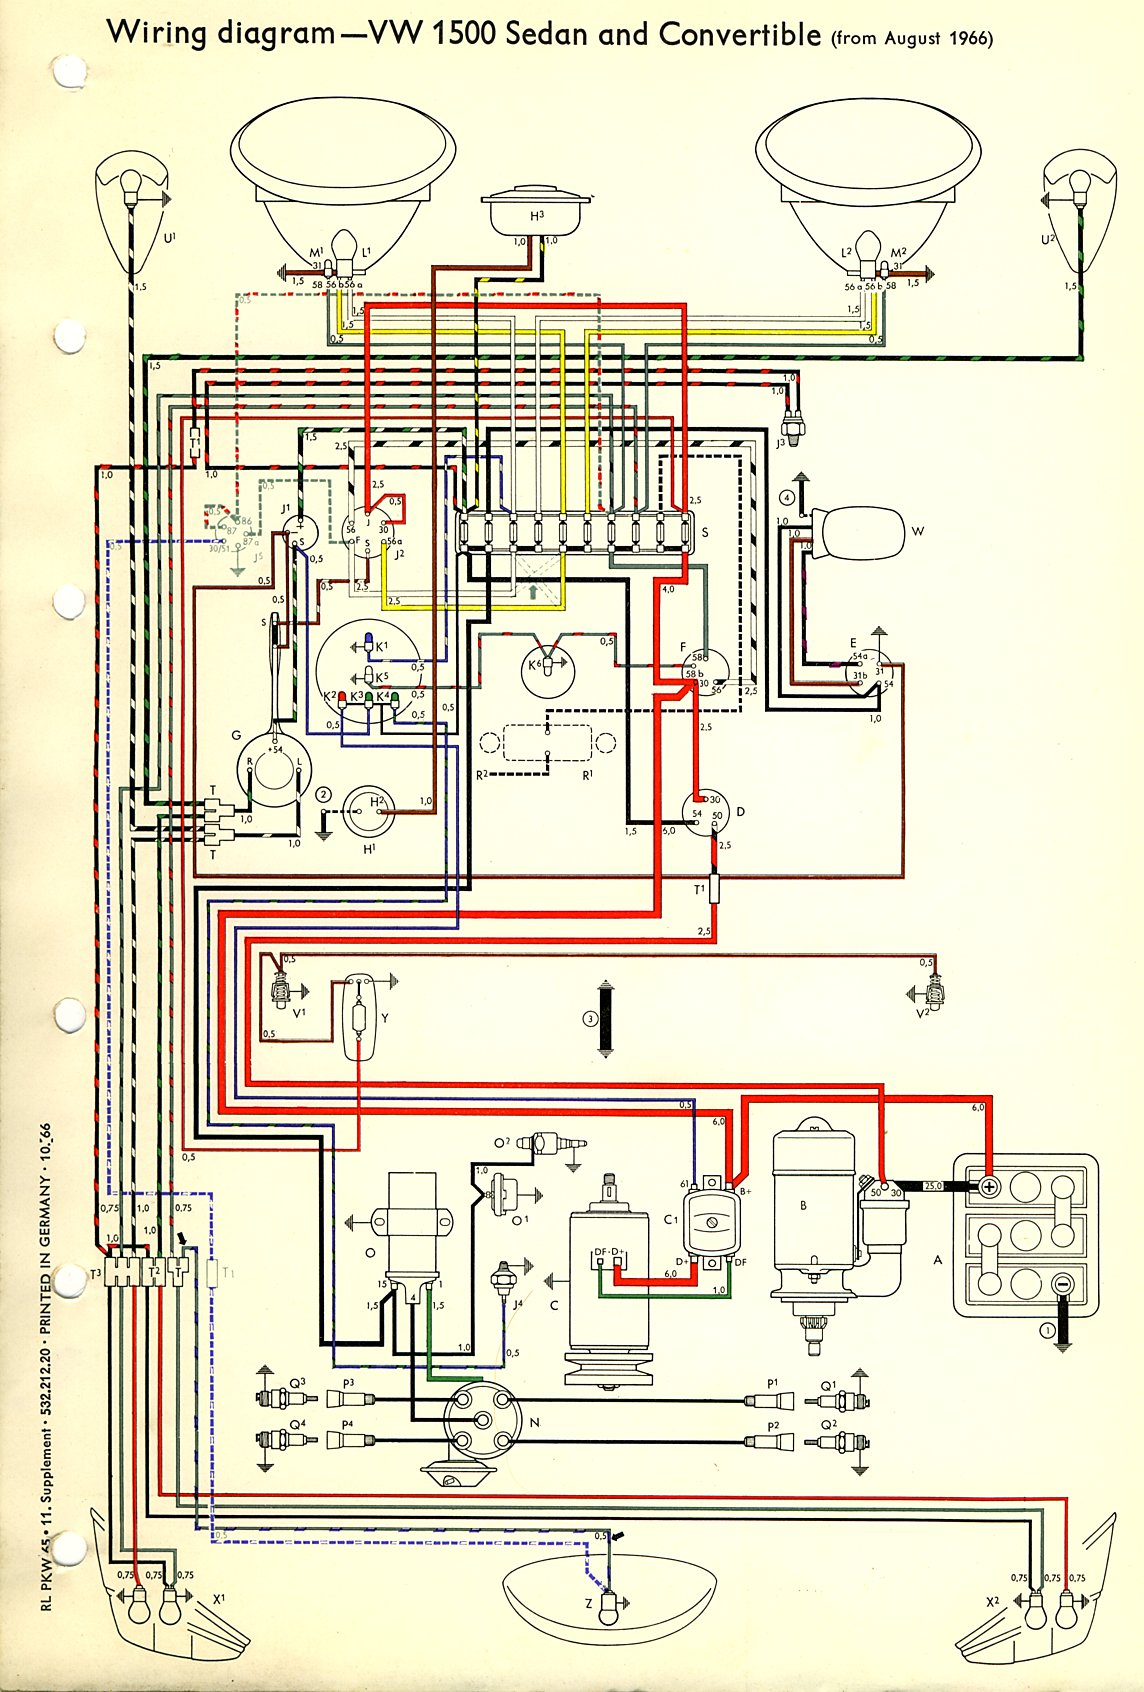 thesamba com type 1 wiring diagrams rh thesamba com 1956 VW Beetle 1945 VW Beetle